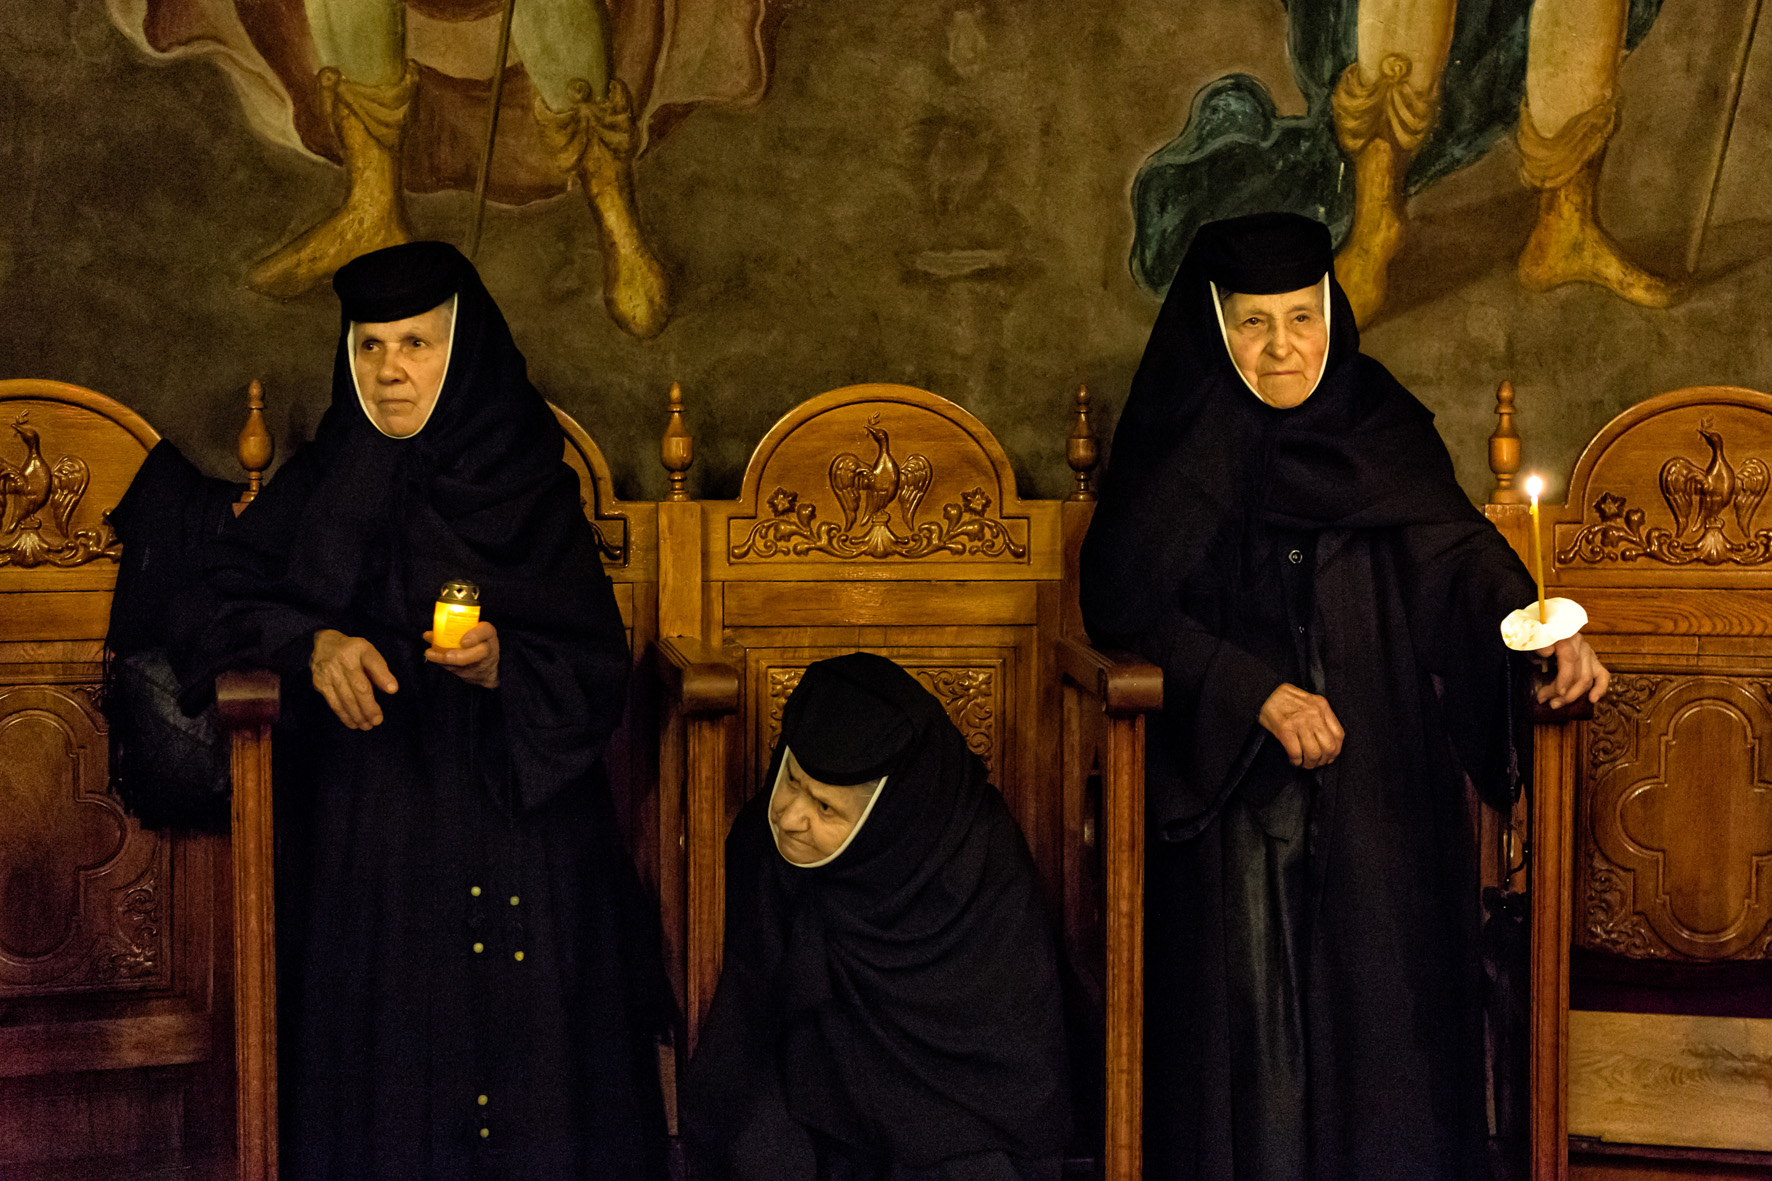 WORKSHOP-SANTOS MORENO_Orthodox nuns_EIBAR-2015